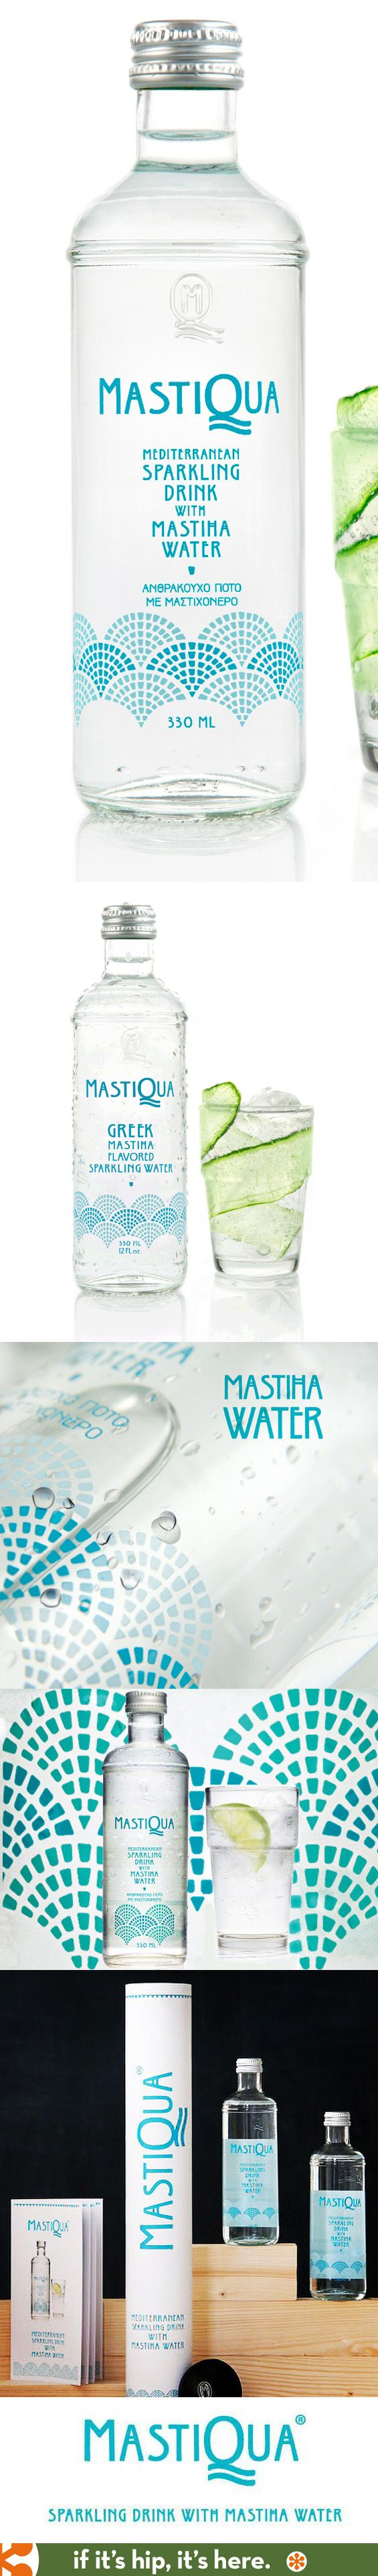 Mastiqua Sparkling drink from Greece is made with Mastiha water and has the very appropriate 'mosaic' design on their bottle.